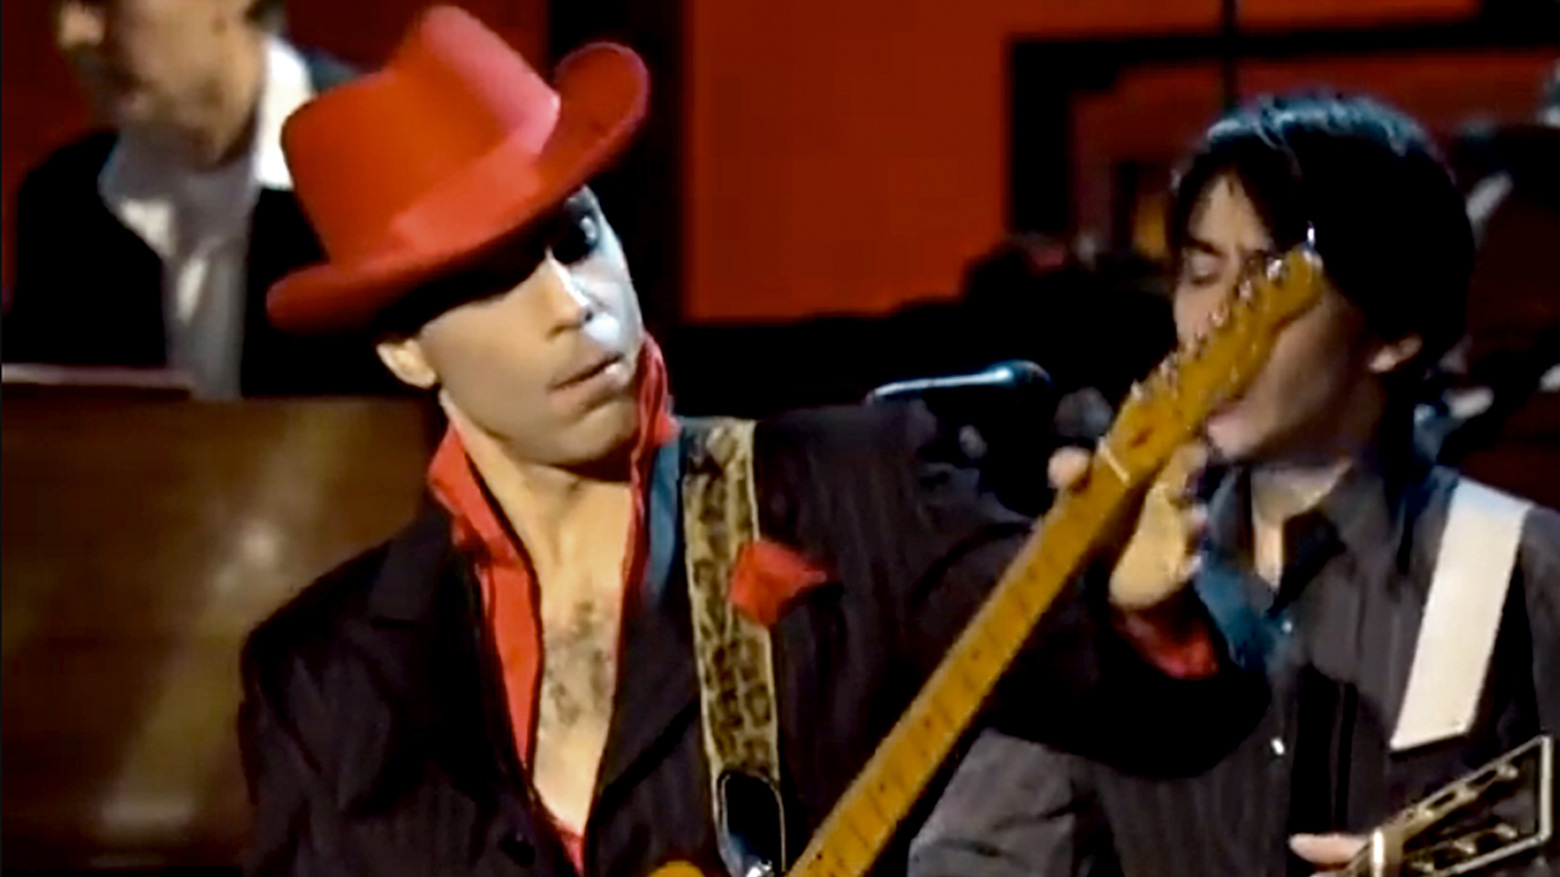 While my guitar gently weeps prince story